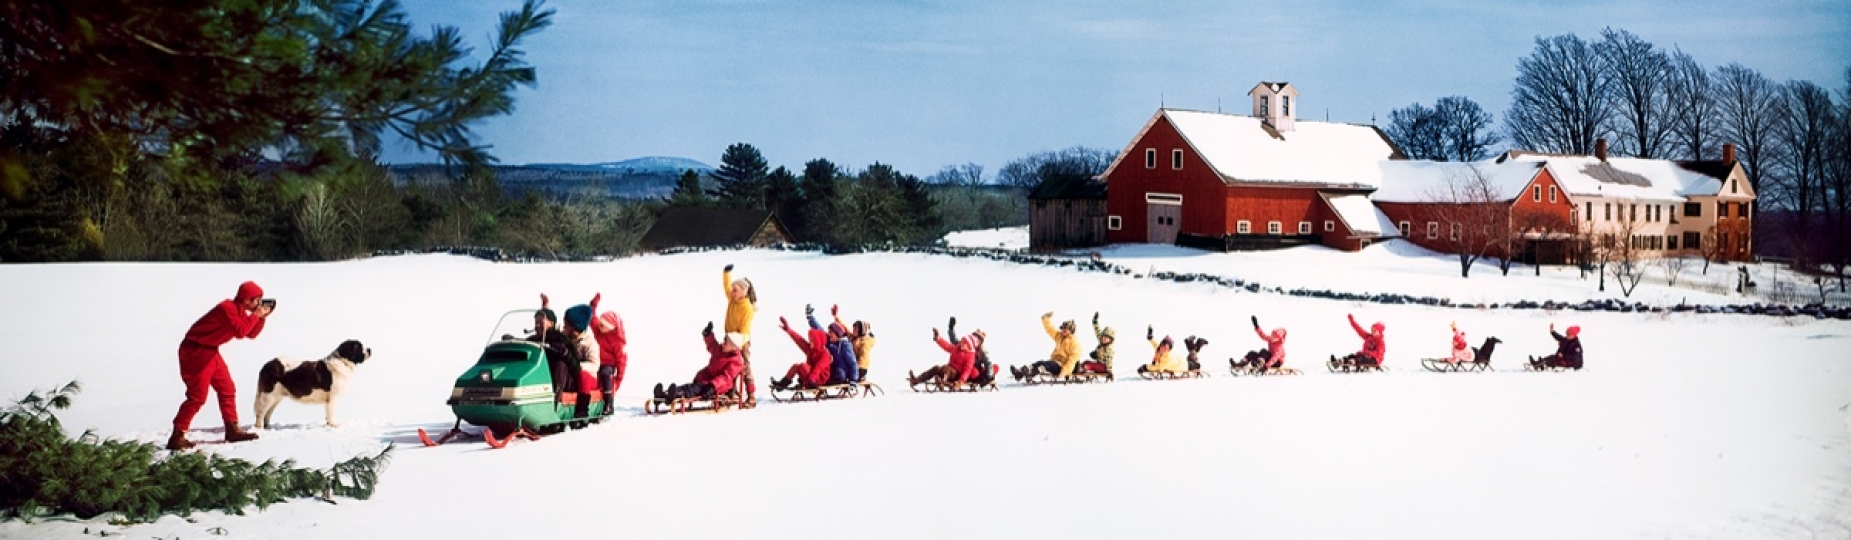 Snowmobile And Sleds 1969 © Ozzie Sweet